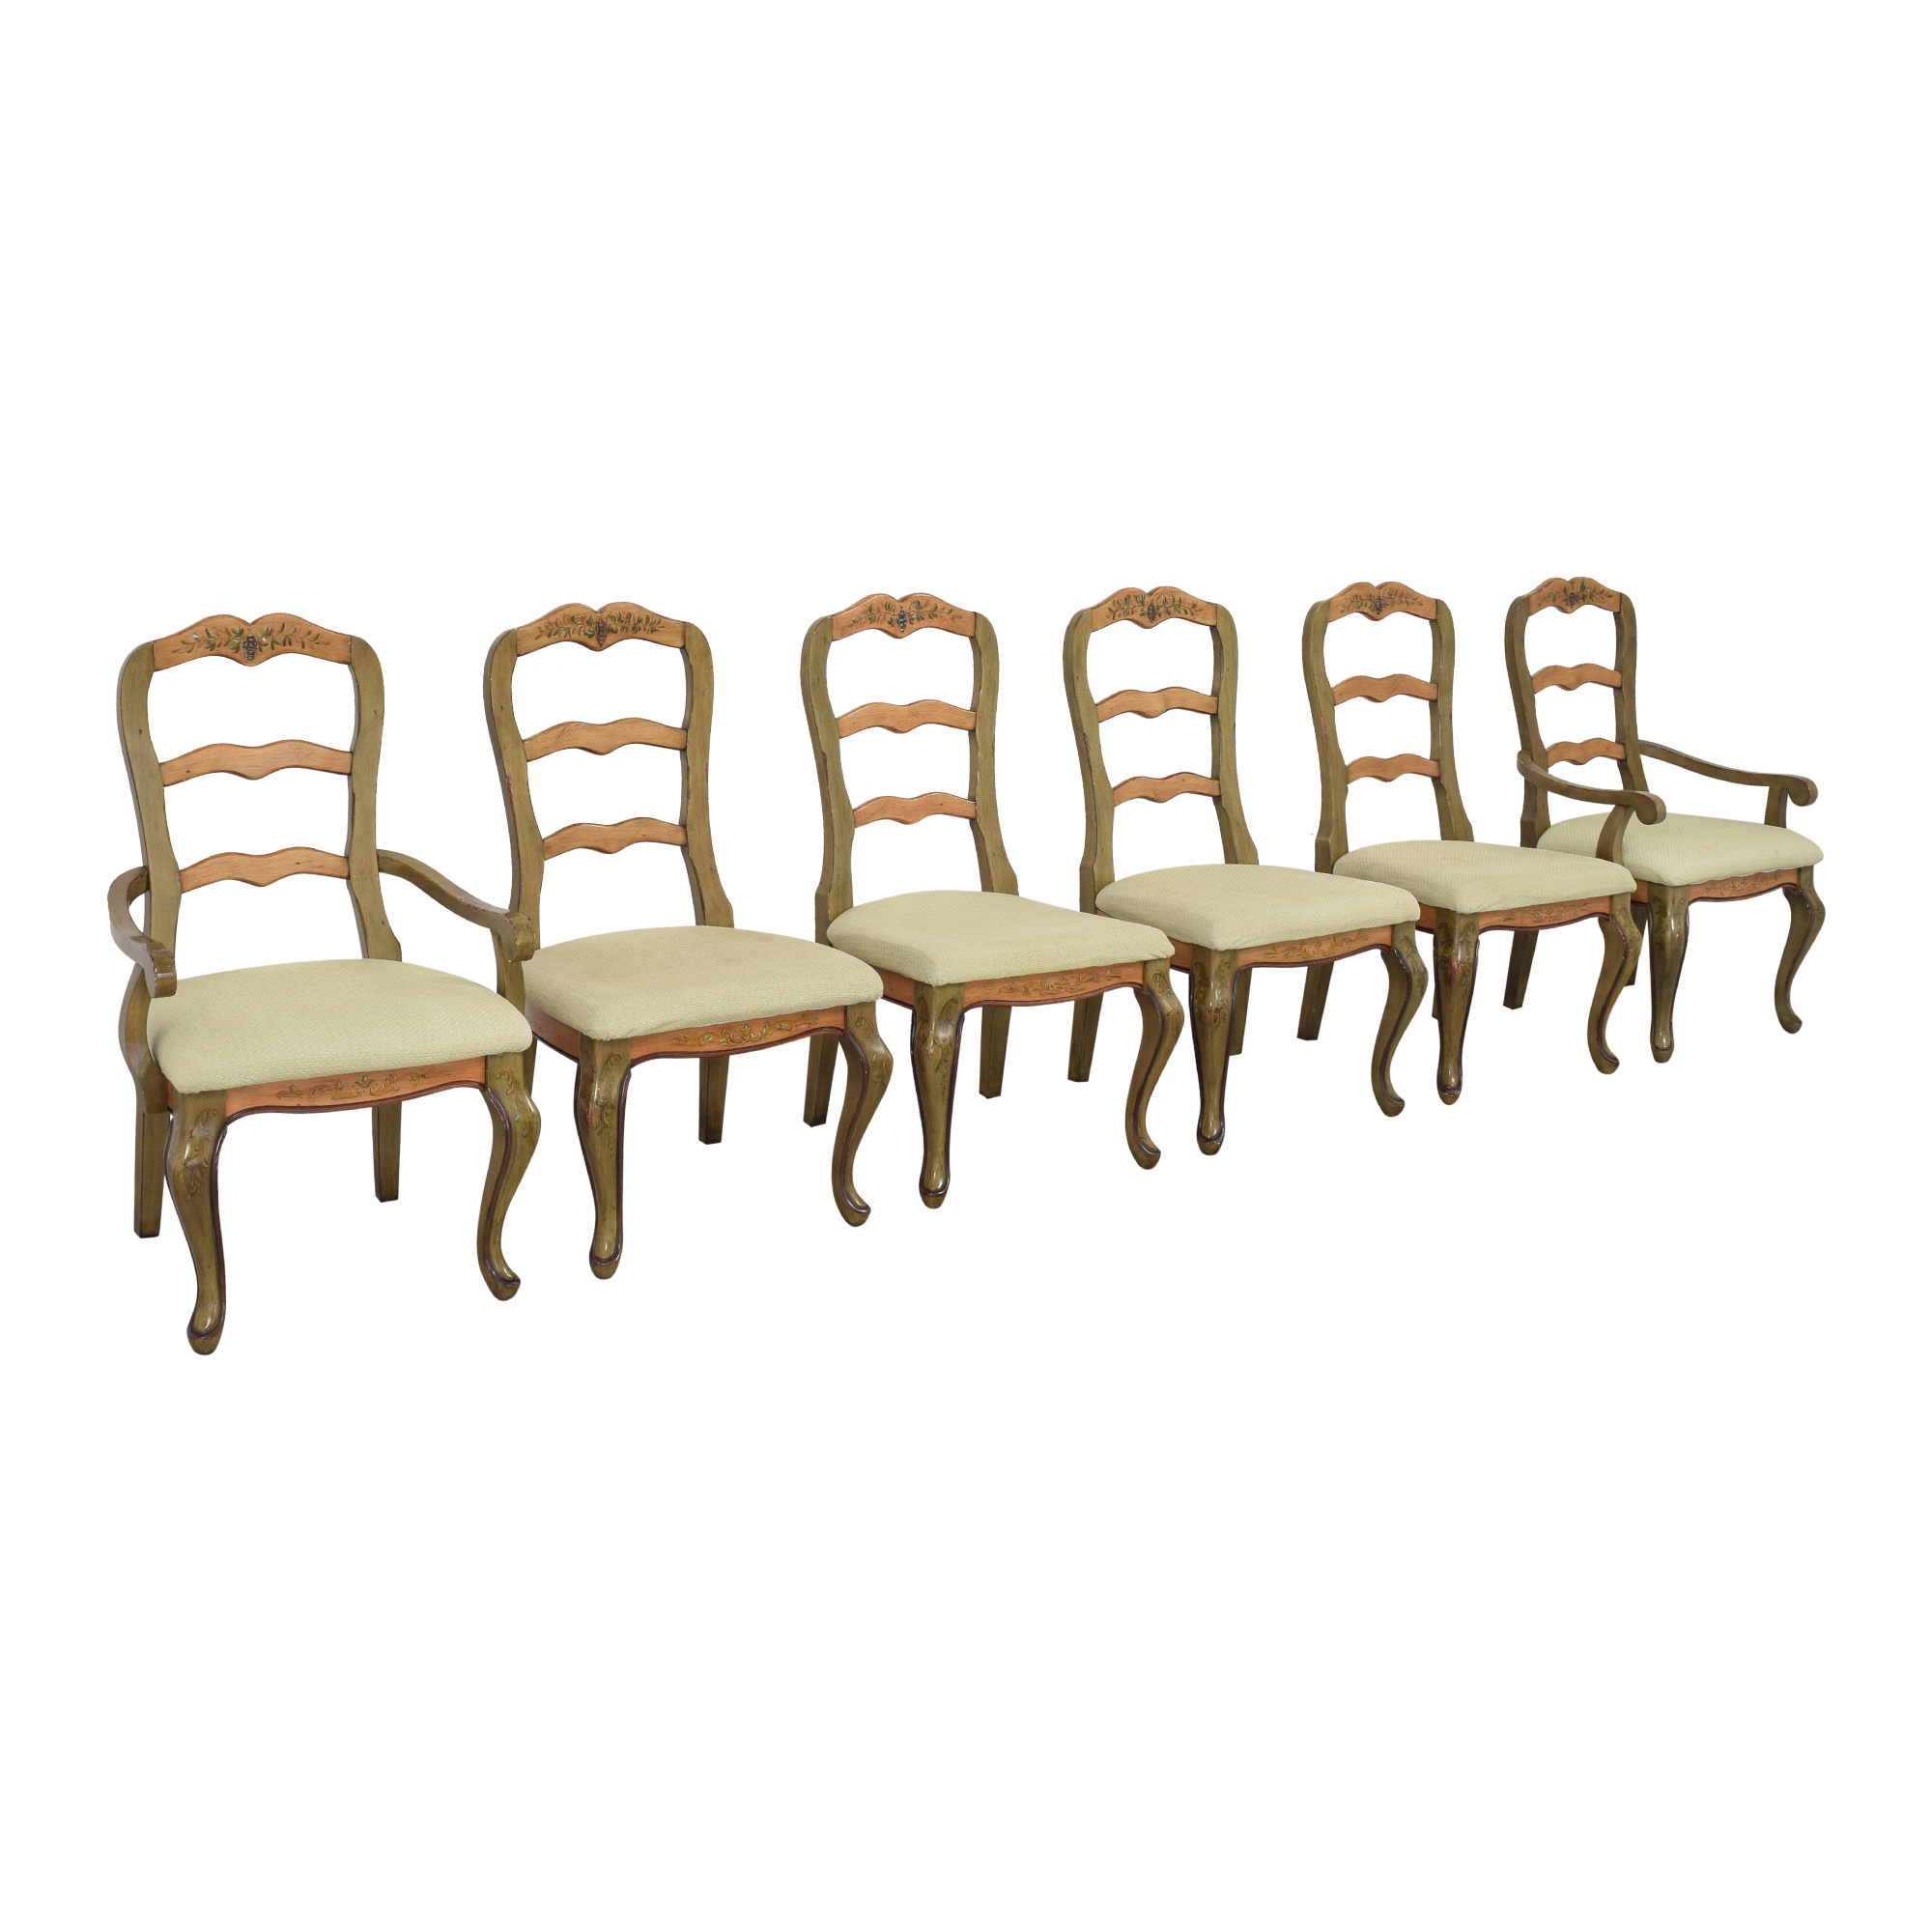 Painted French Country Style Dining Chairs used